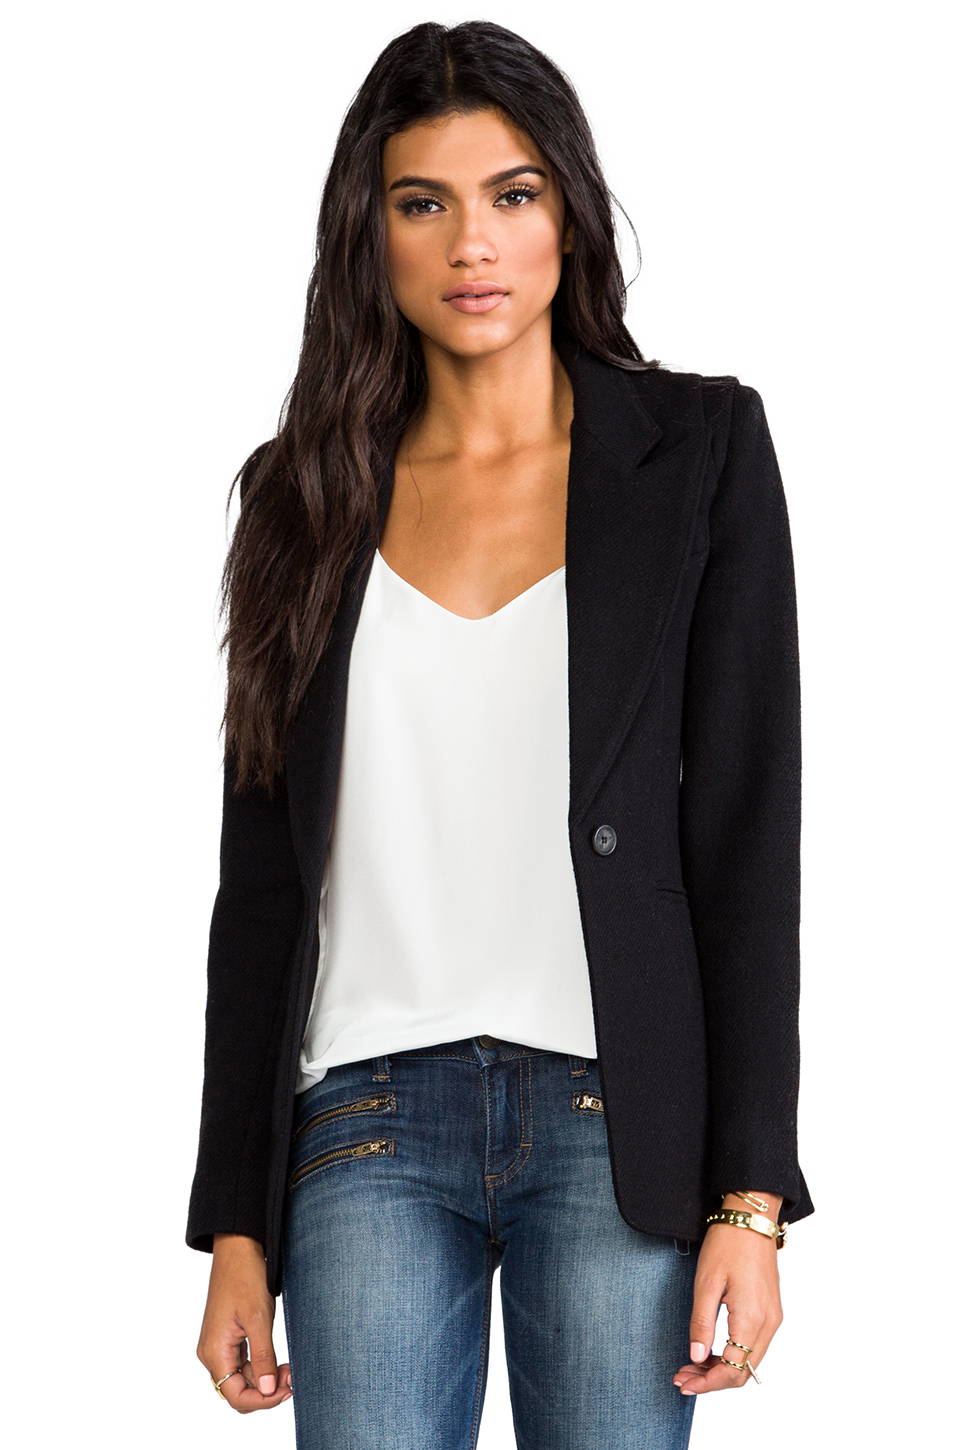 Smythe Hourglass Blazer in Black at Revolve Clothing